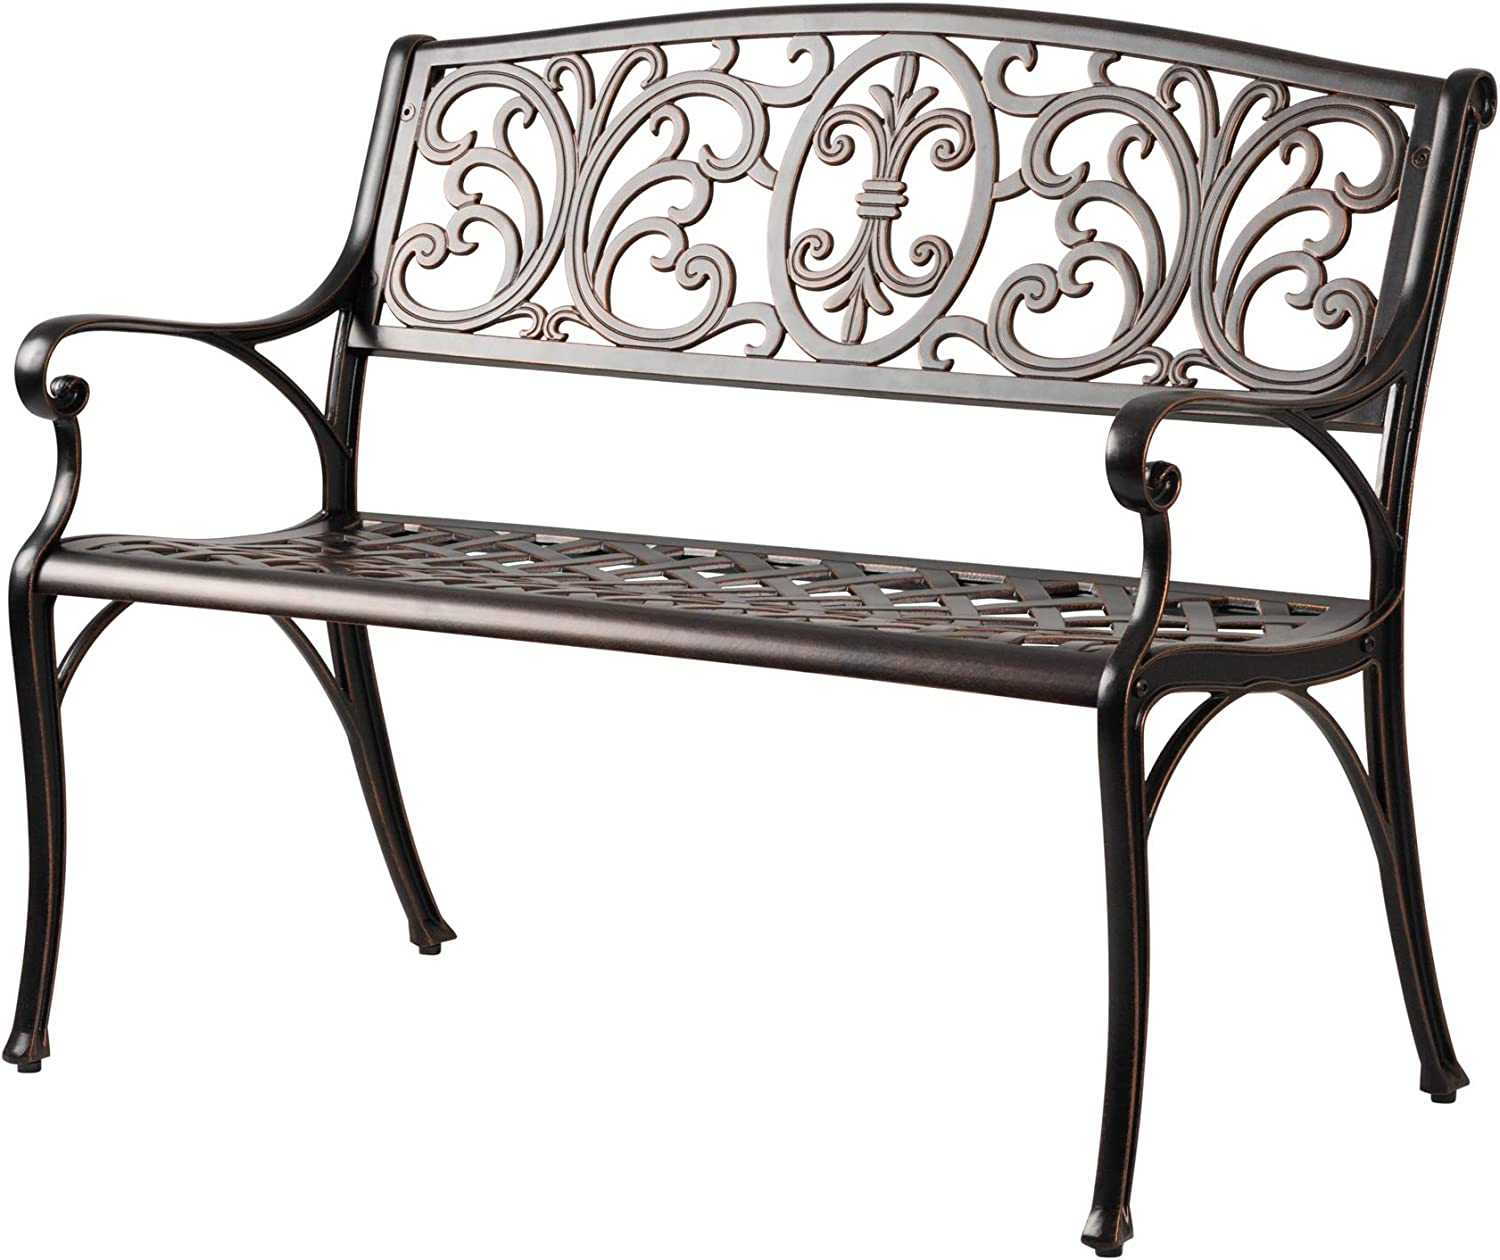 Patio Sense Decatur Cast Aluminum Patio Bench | Antique Bronze Finish | Heavy Duty Rust Free Metal Construction | Lightweight | Easy Assembly | For Front Porch, Backyard, Lawn, Garden, Pool, Deck